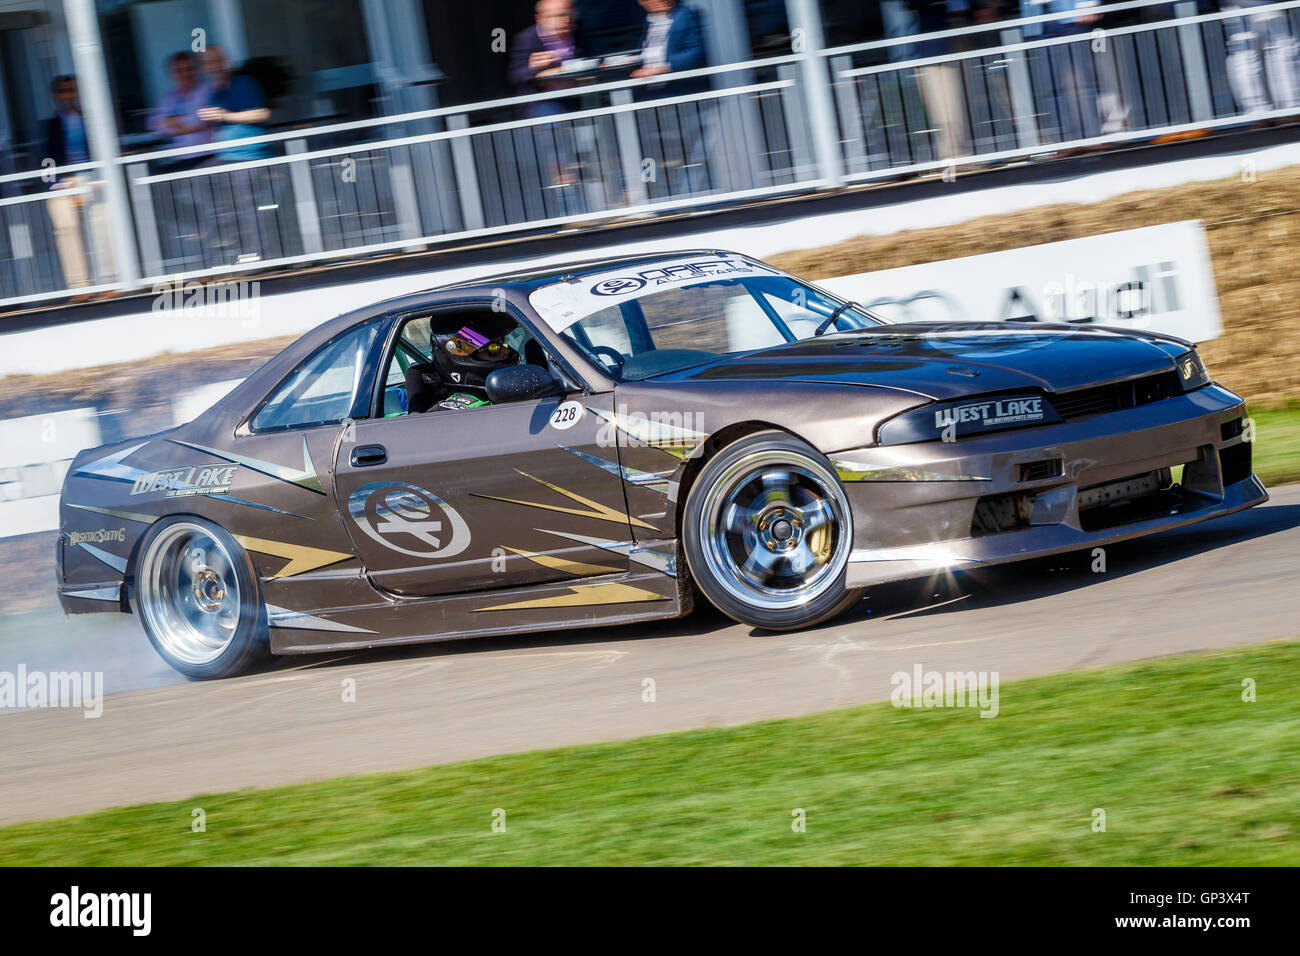 Nissan Skyline Drift Car With Driver Martin Richards At The